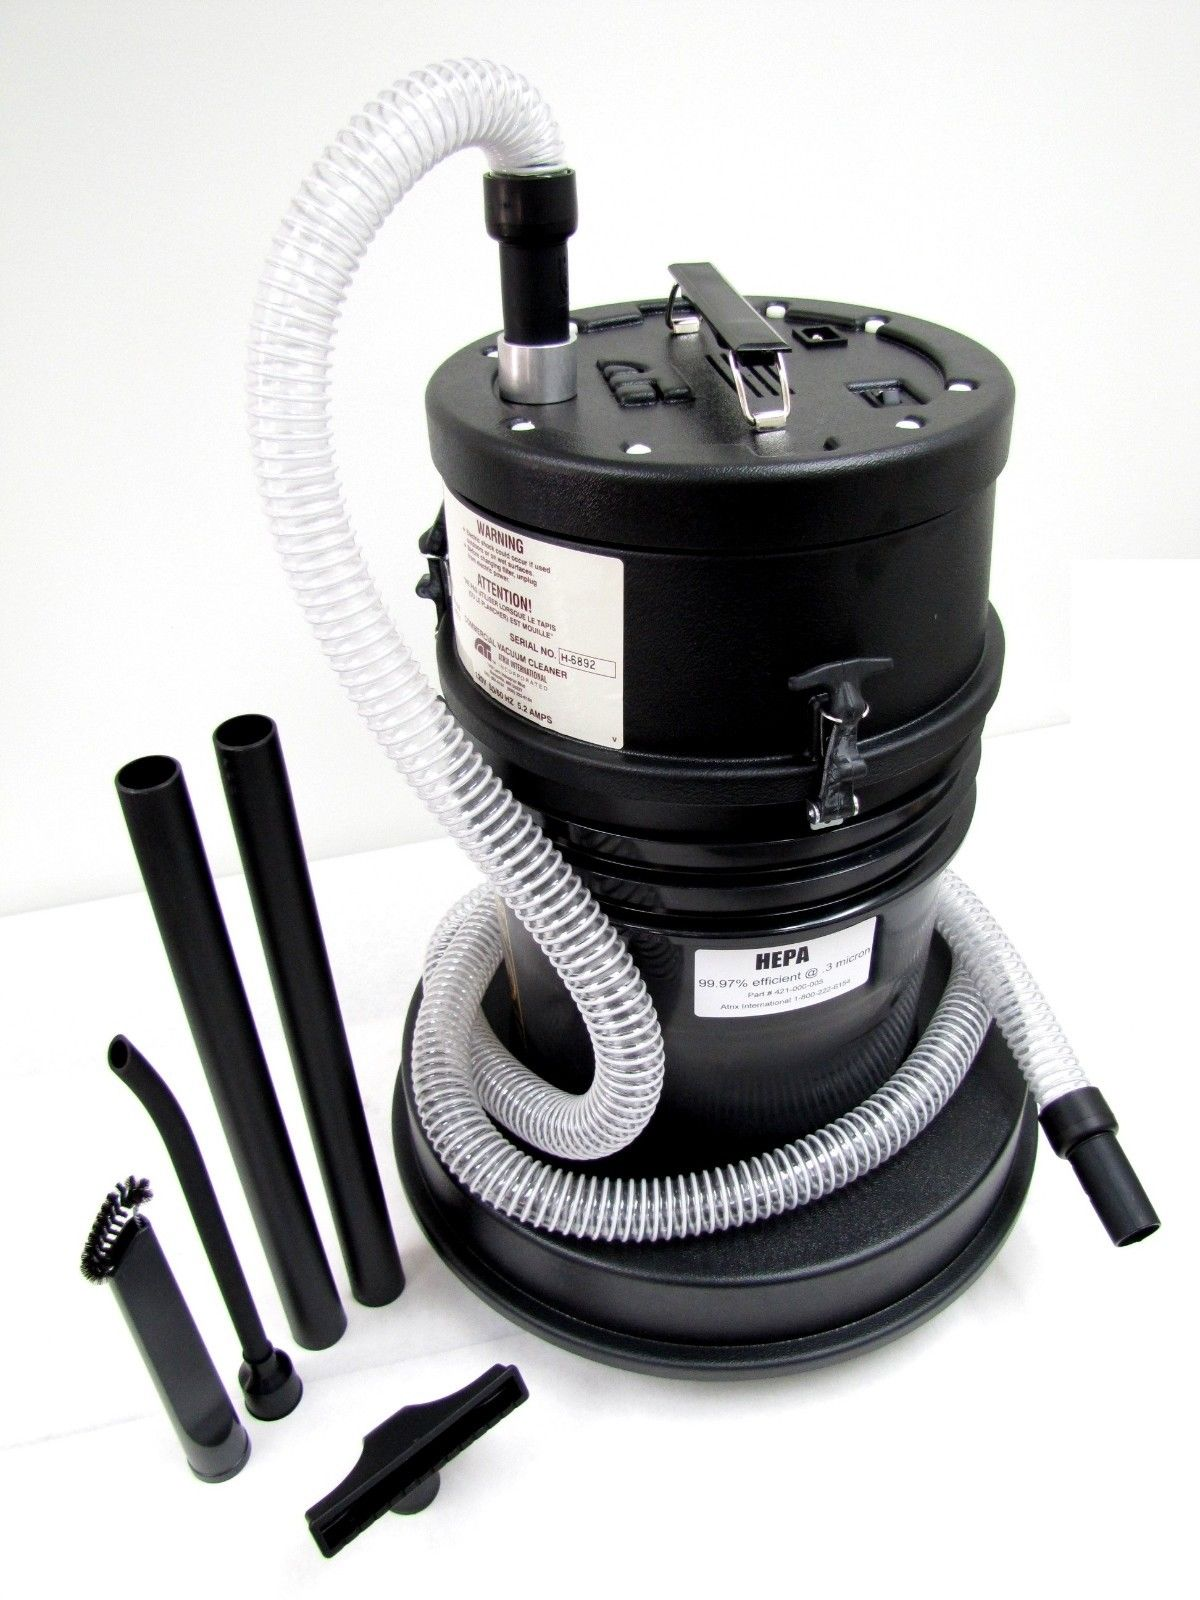 HIGHCAPVAC - High Capacity Hepa Vacuum